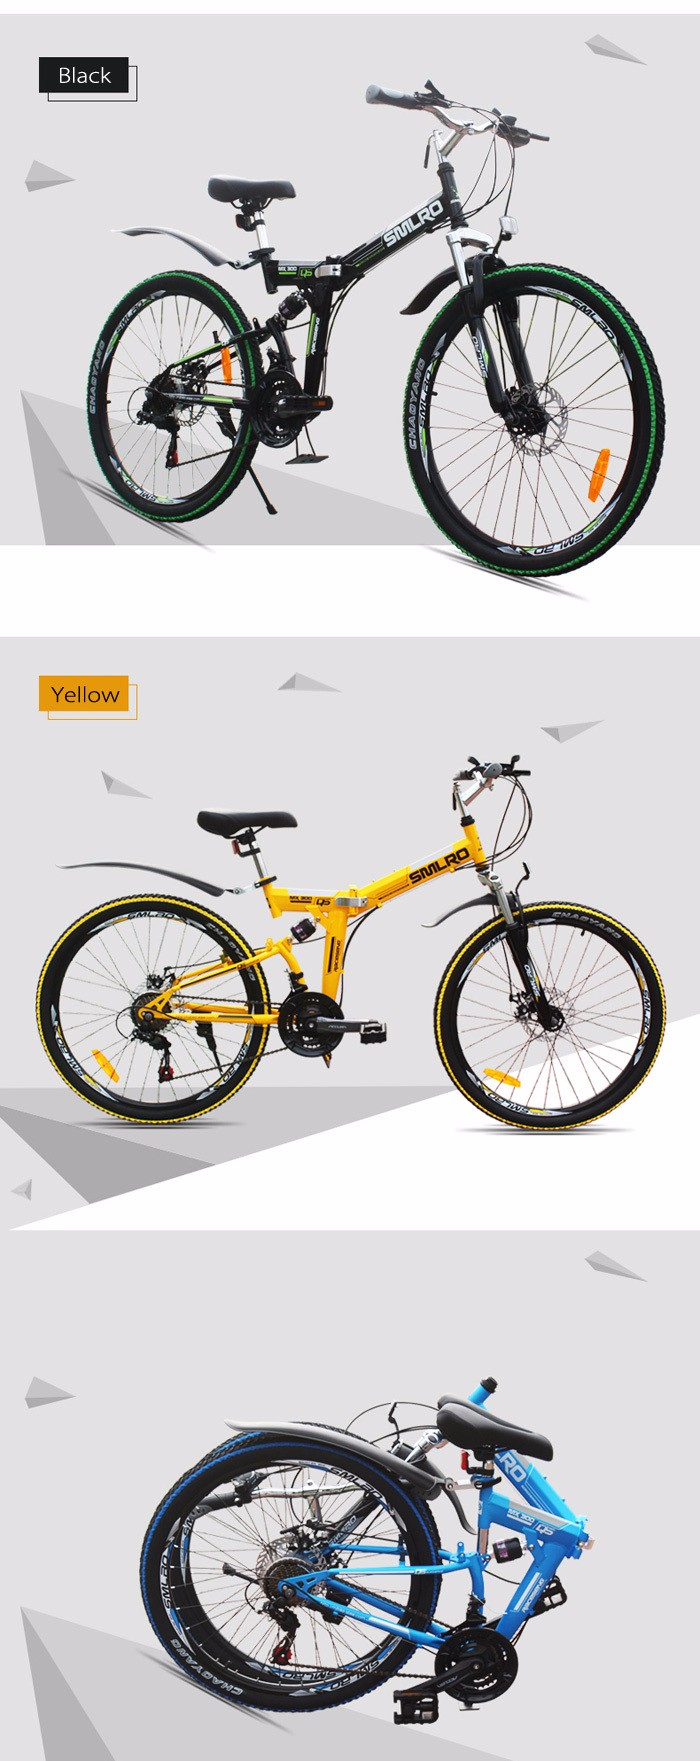 SMLRO MX300 26 inch Folding Mountain Bike 21 Speed Spoked Wheel High-carbon Steel Frame Double Disc Brakes Cycling Bicycle